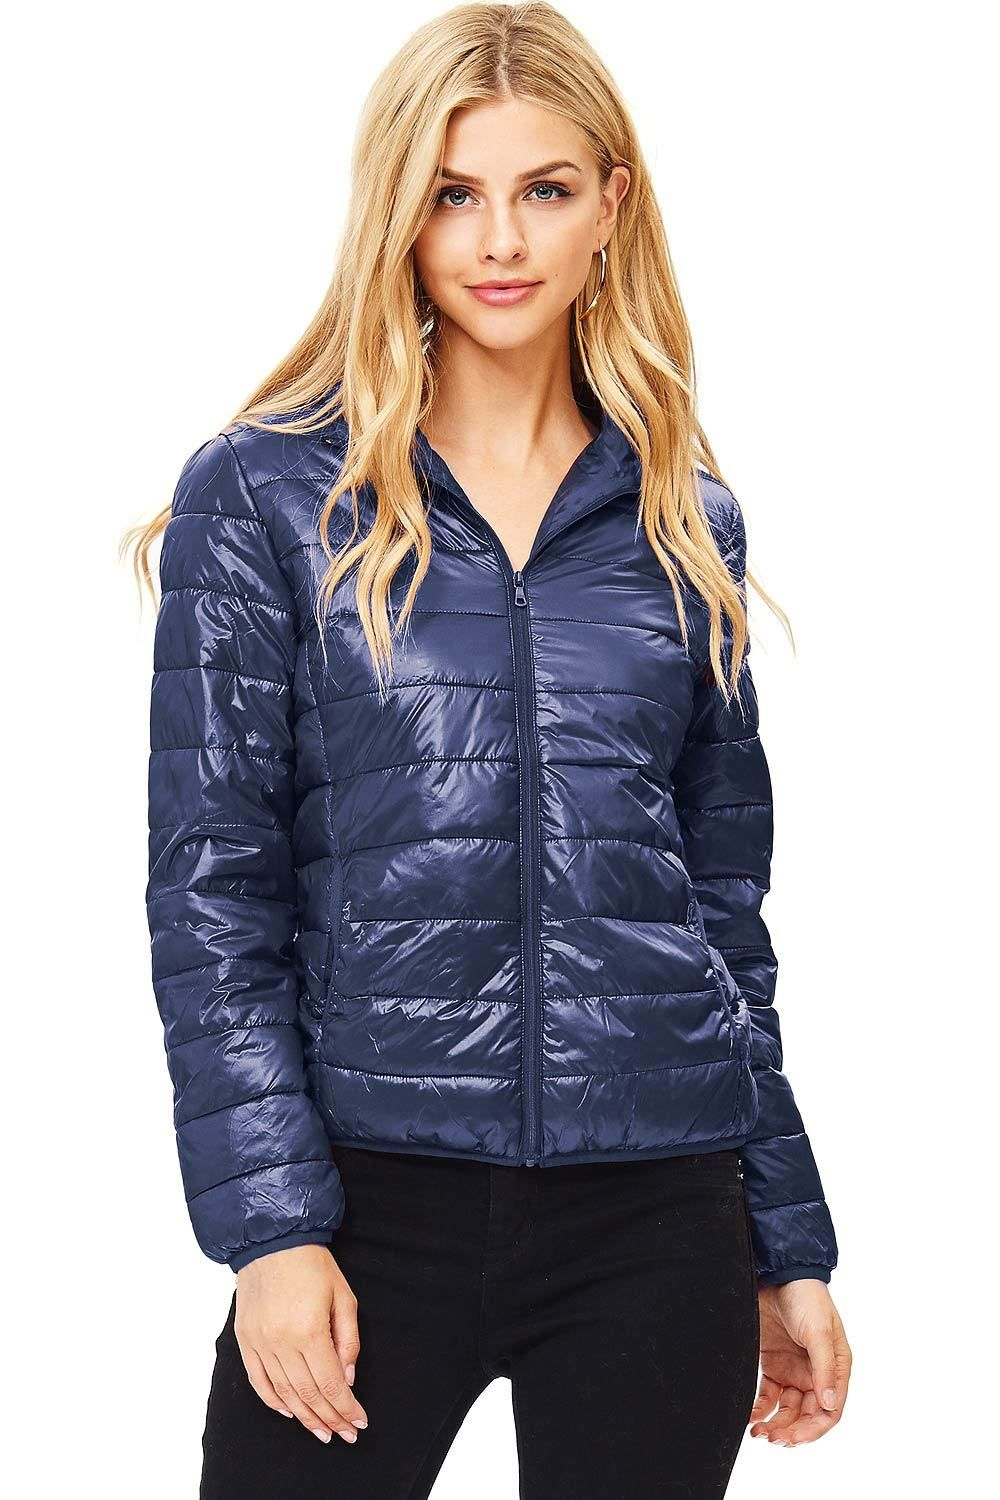 Quilted Puffer Hooded Jacket Features Side Pockets And A Front Zipper Closure Super Light Jacket Is Great For Layer Puffer Jacket Women Puffer Jackets Jackets [ 1500 x 1000 Pixel ]